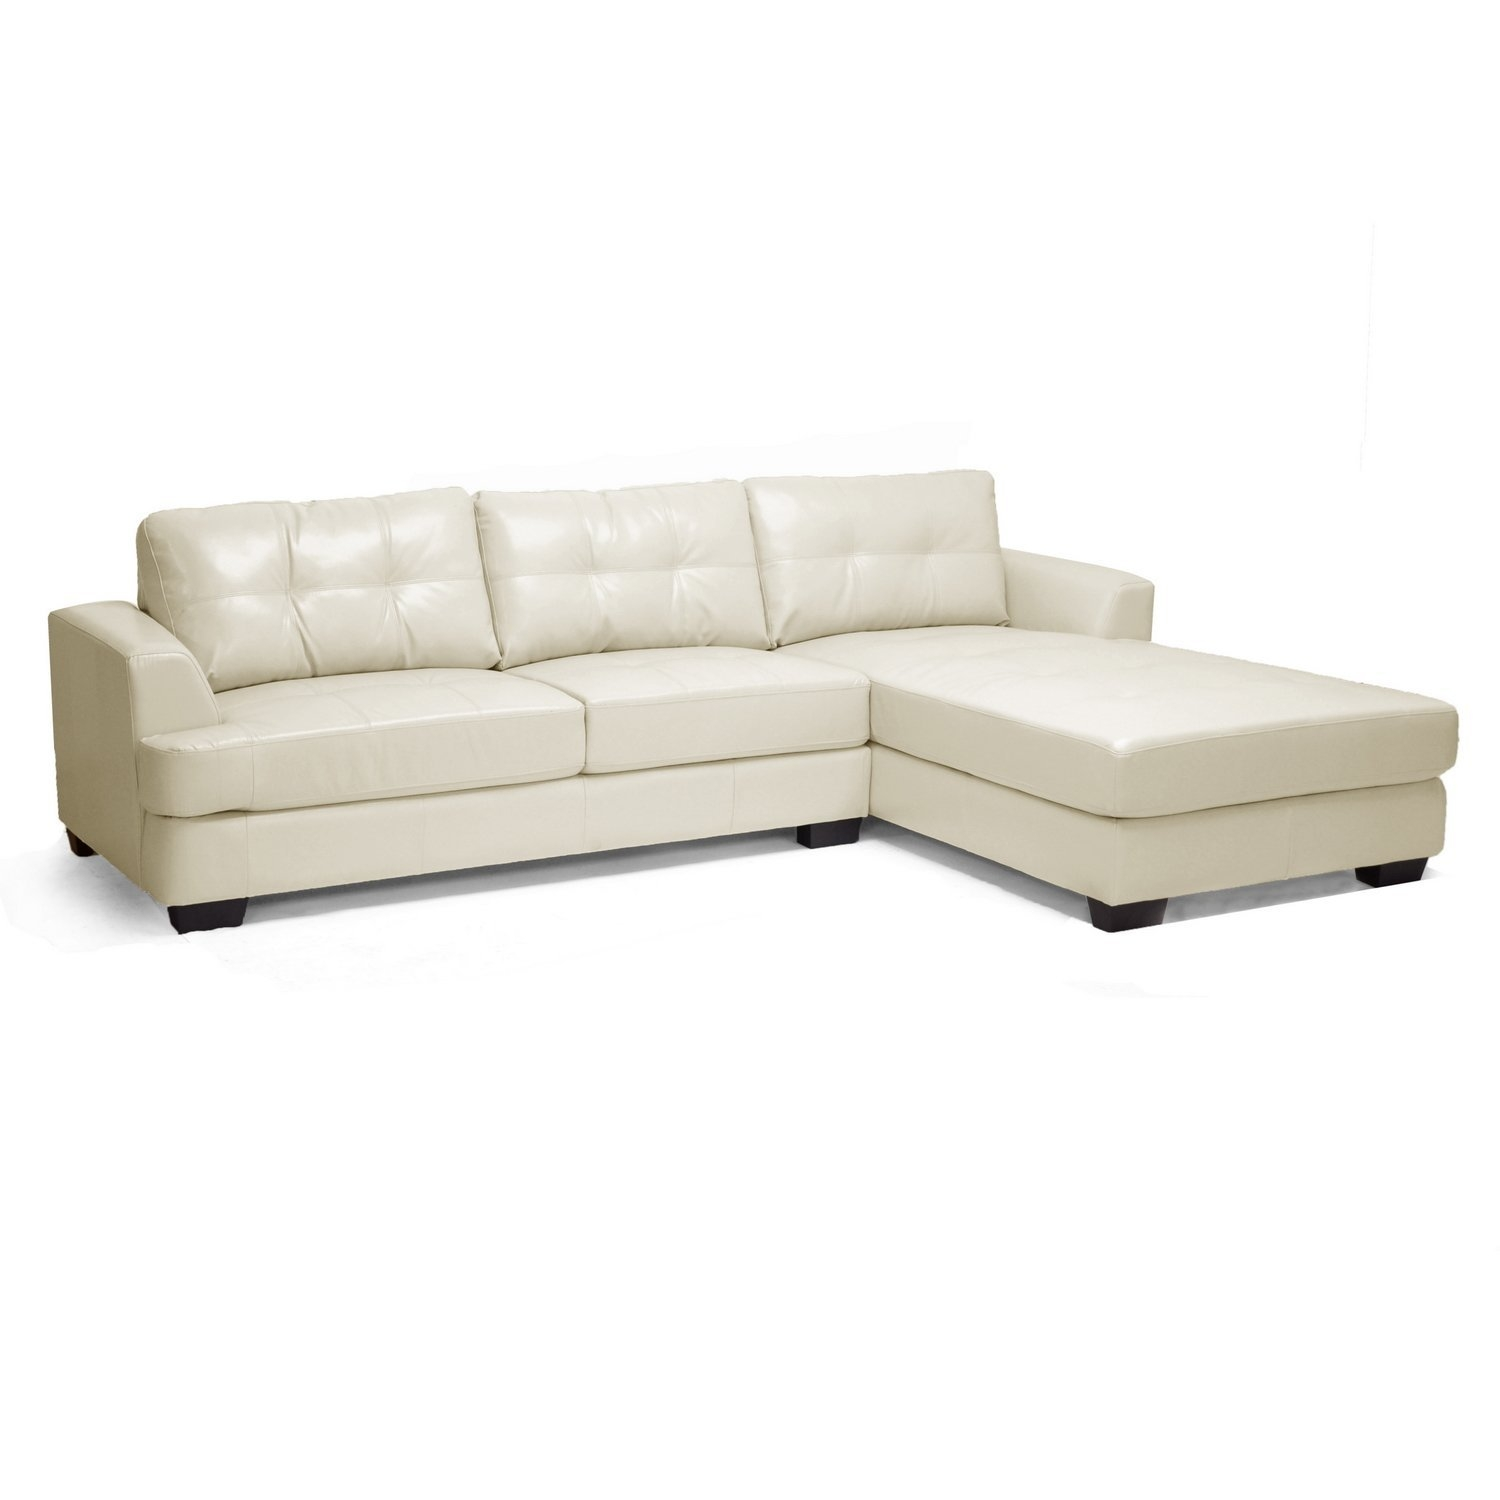 Creativeworks Home Decor Sofas